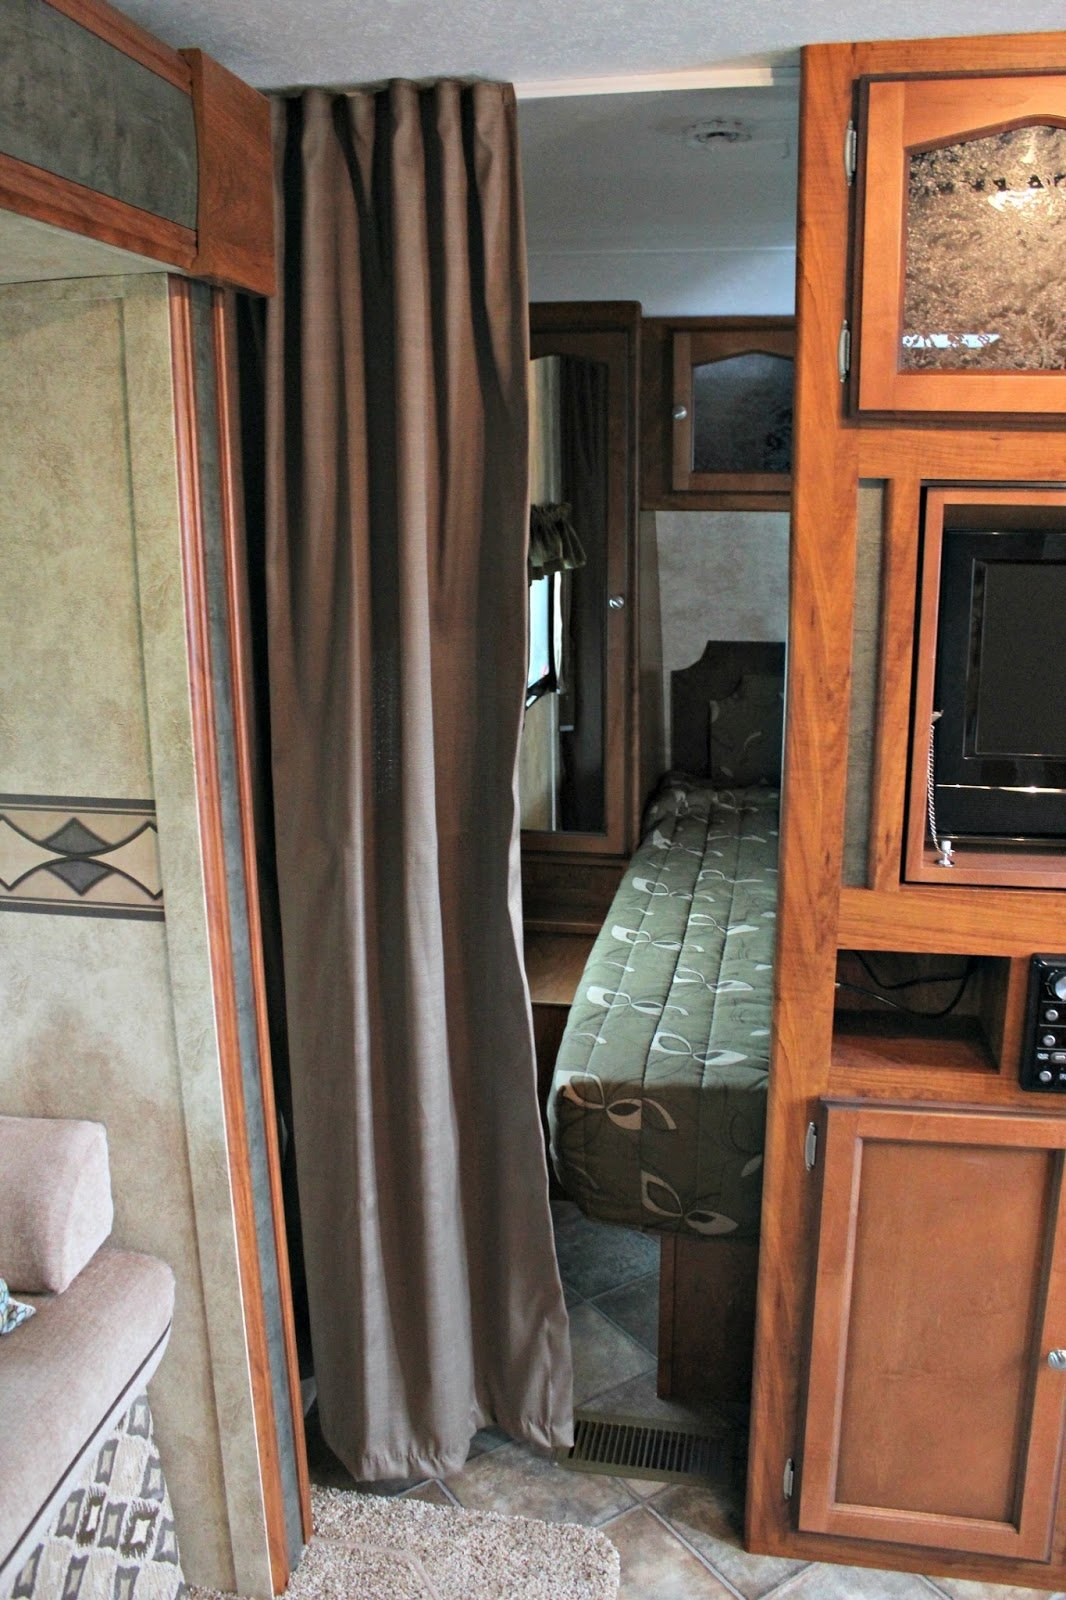 Best Vintage Dutch Girl Travel Trailer Makeover Part 8 With Pictures